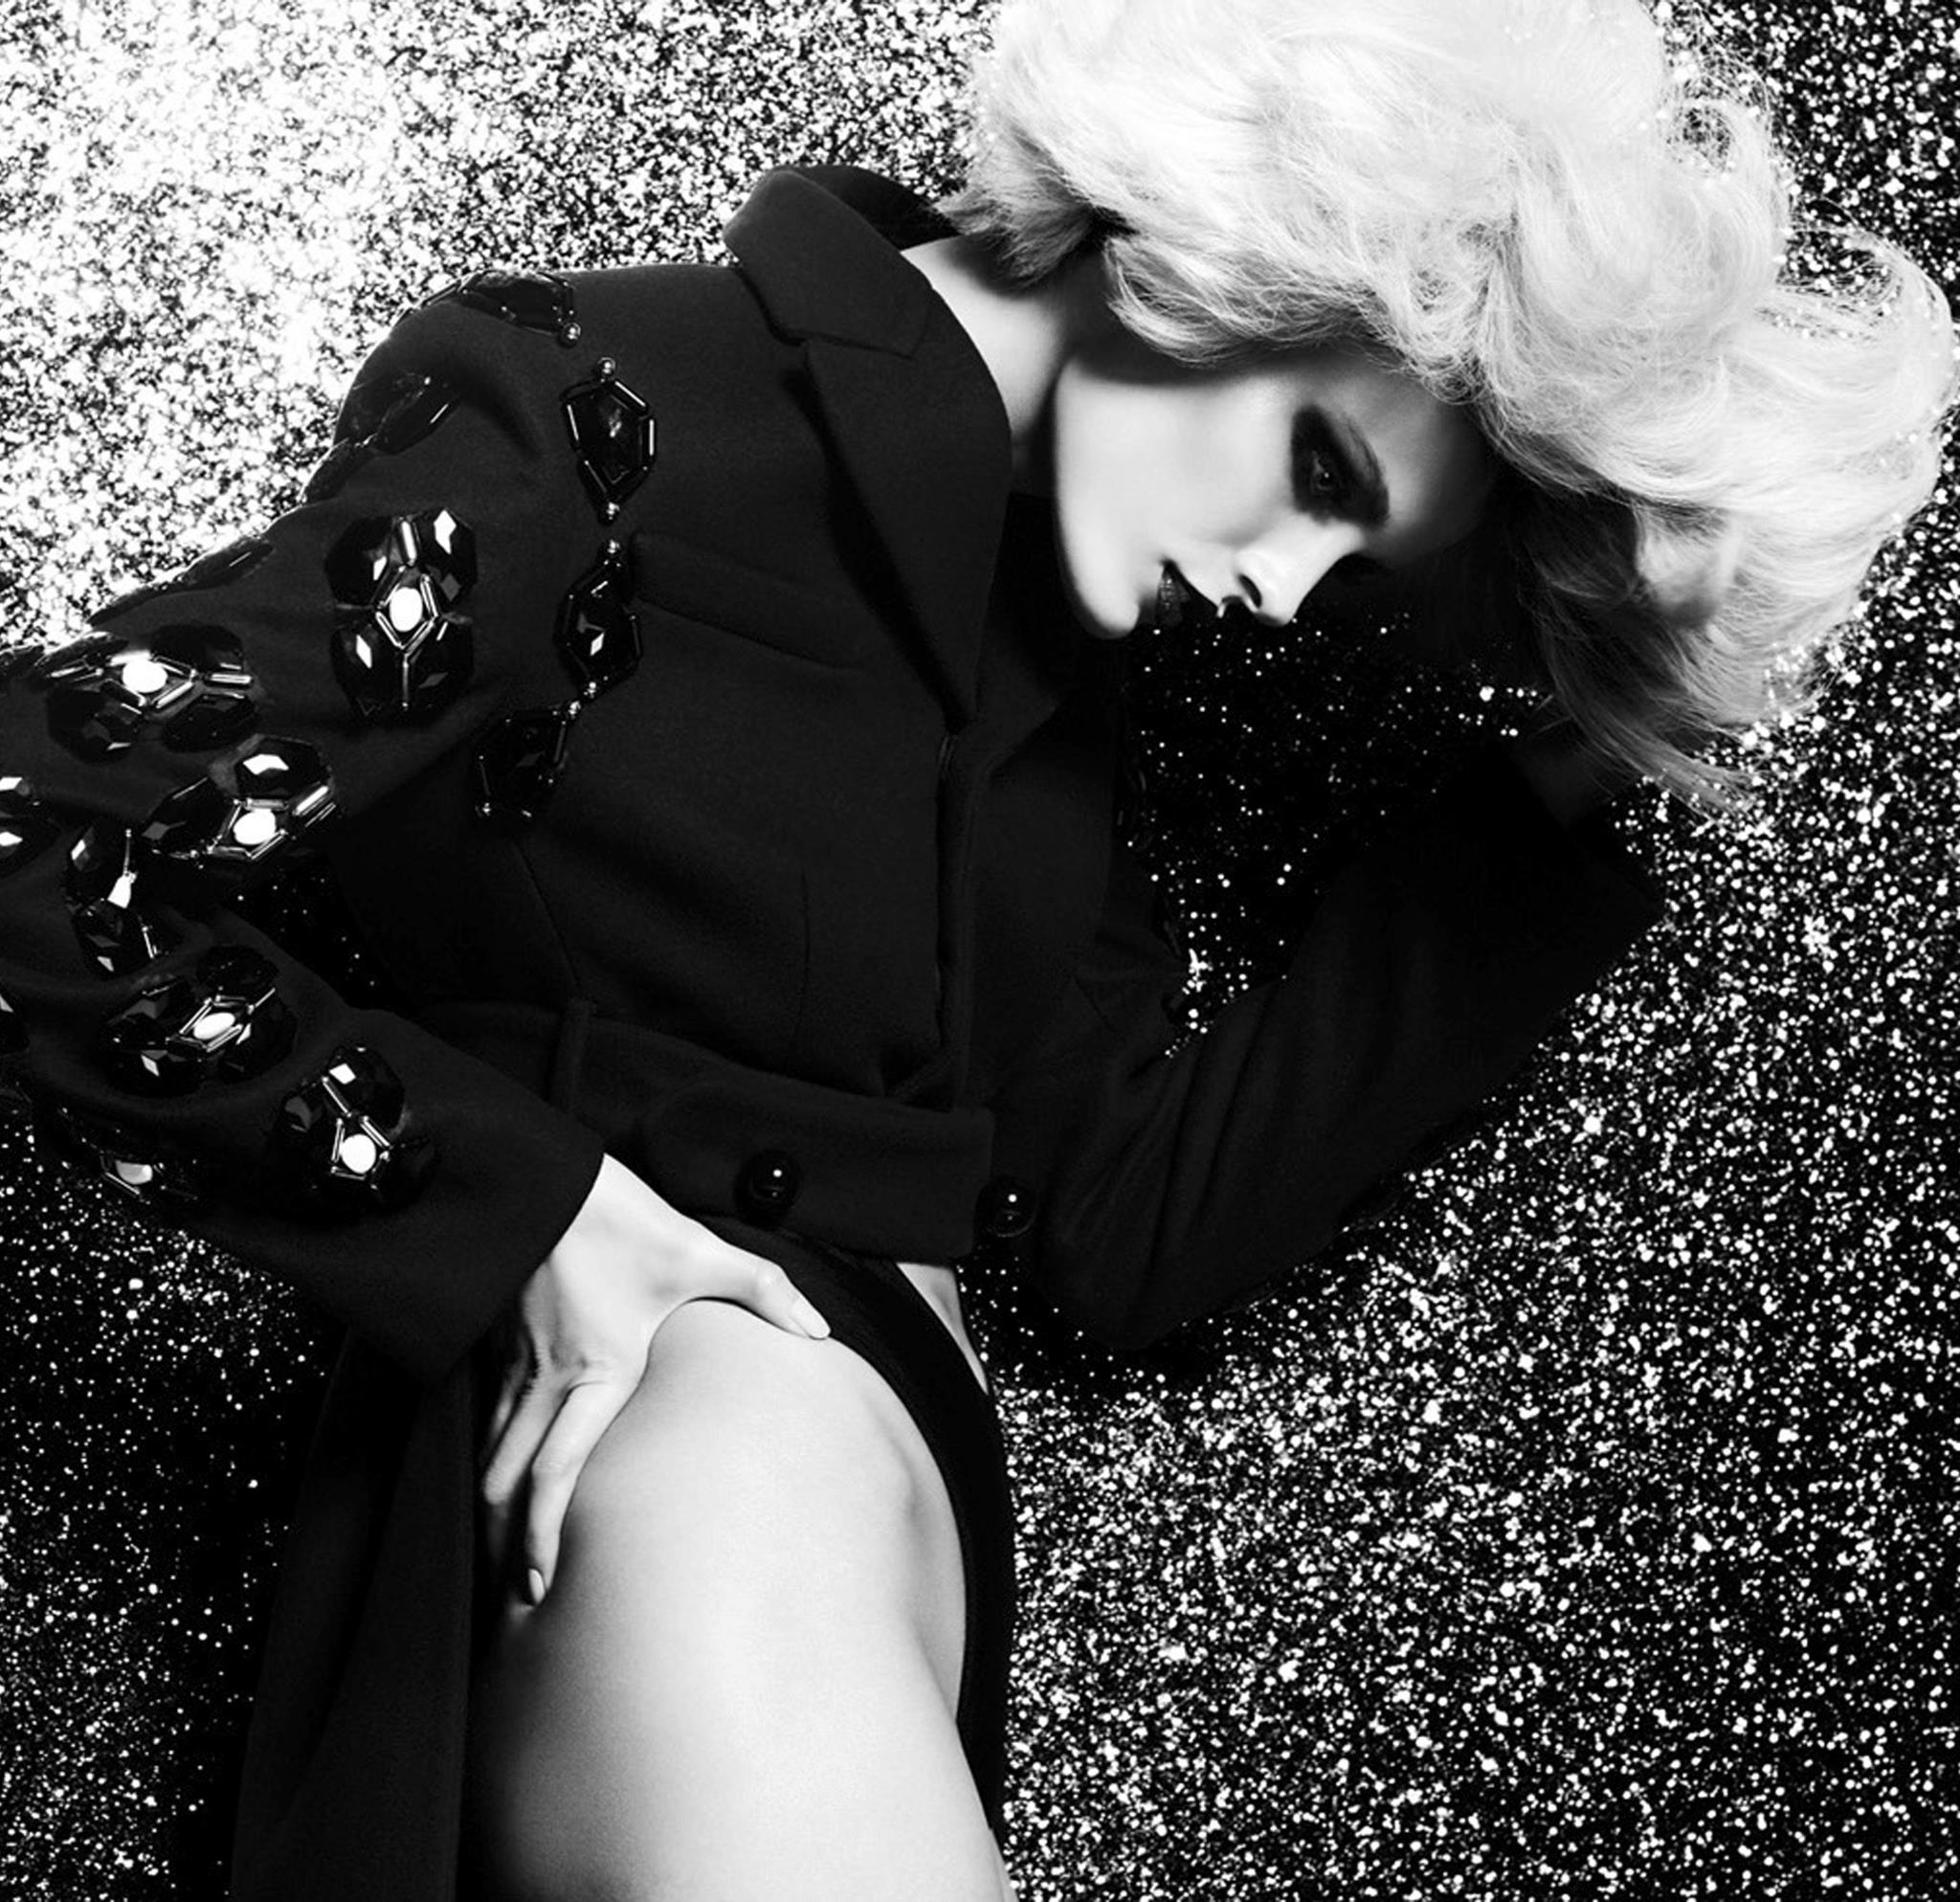 Warren du Preez and Nick Thornton Jones - Edita Vilkeviciute - stylist Franck Benhamou